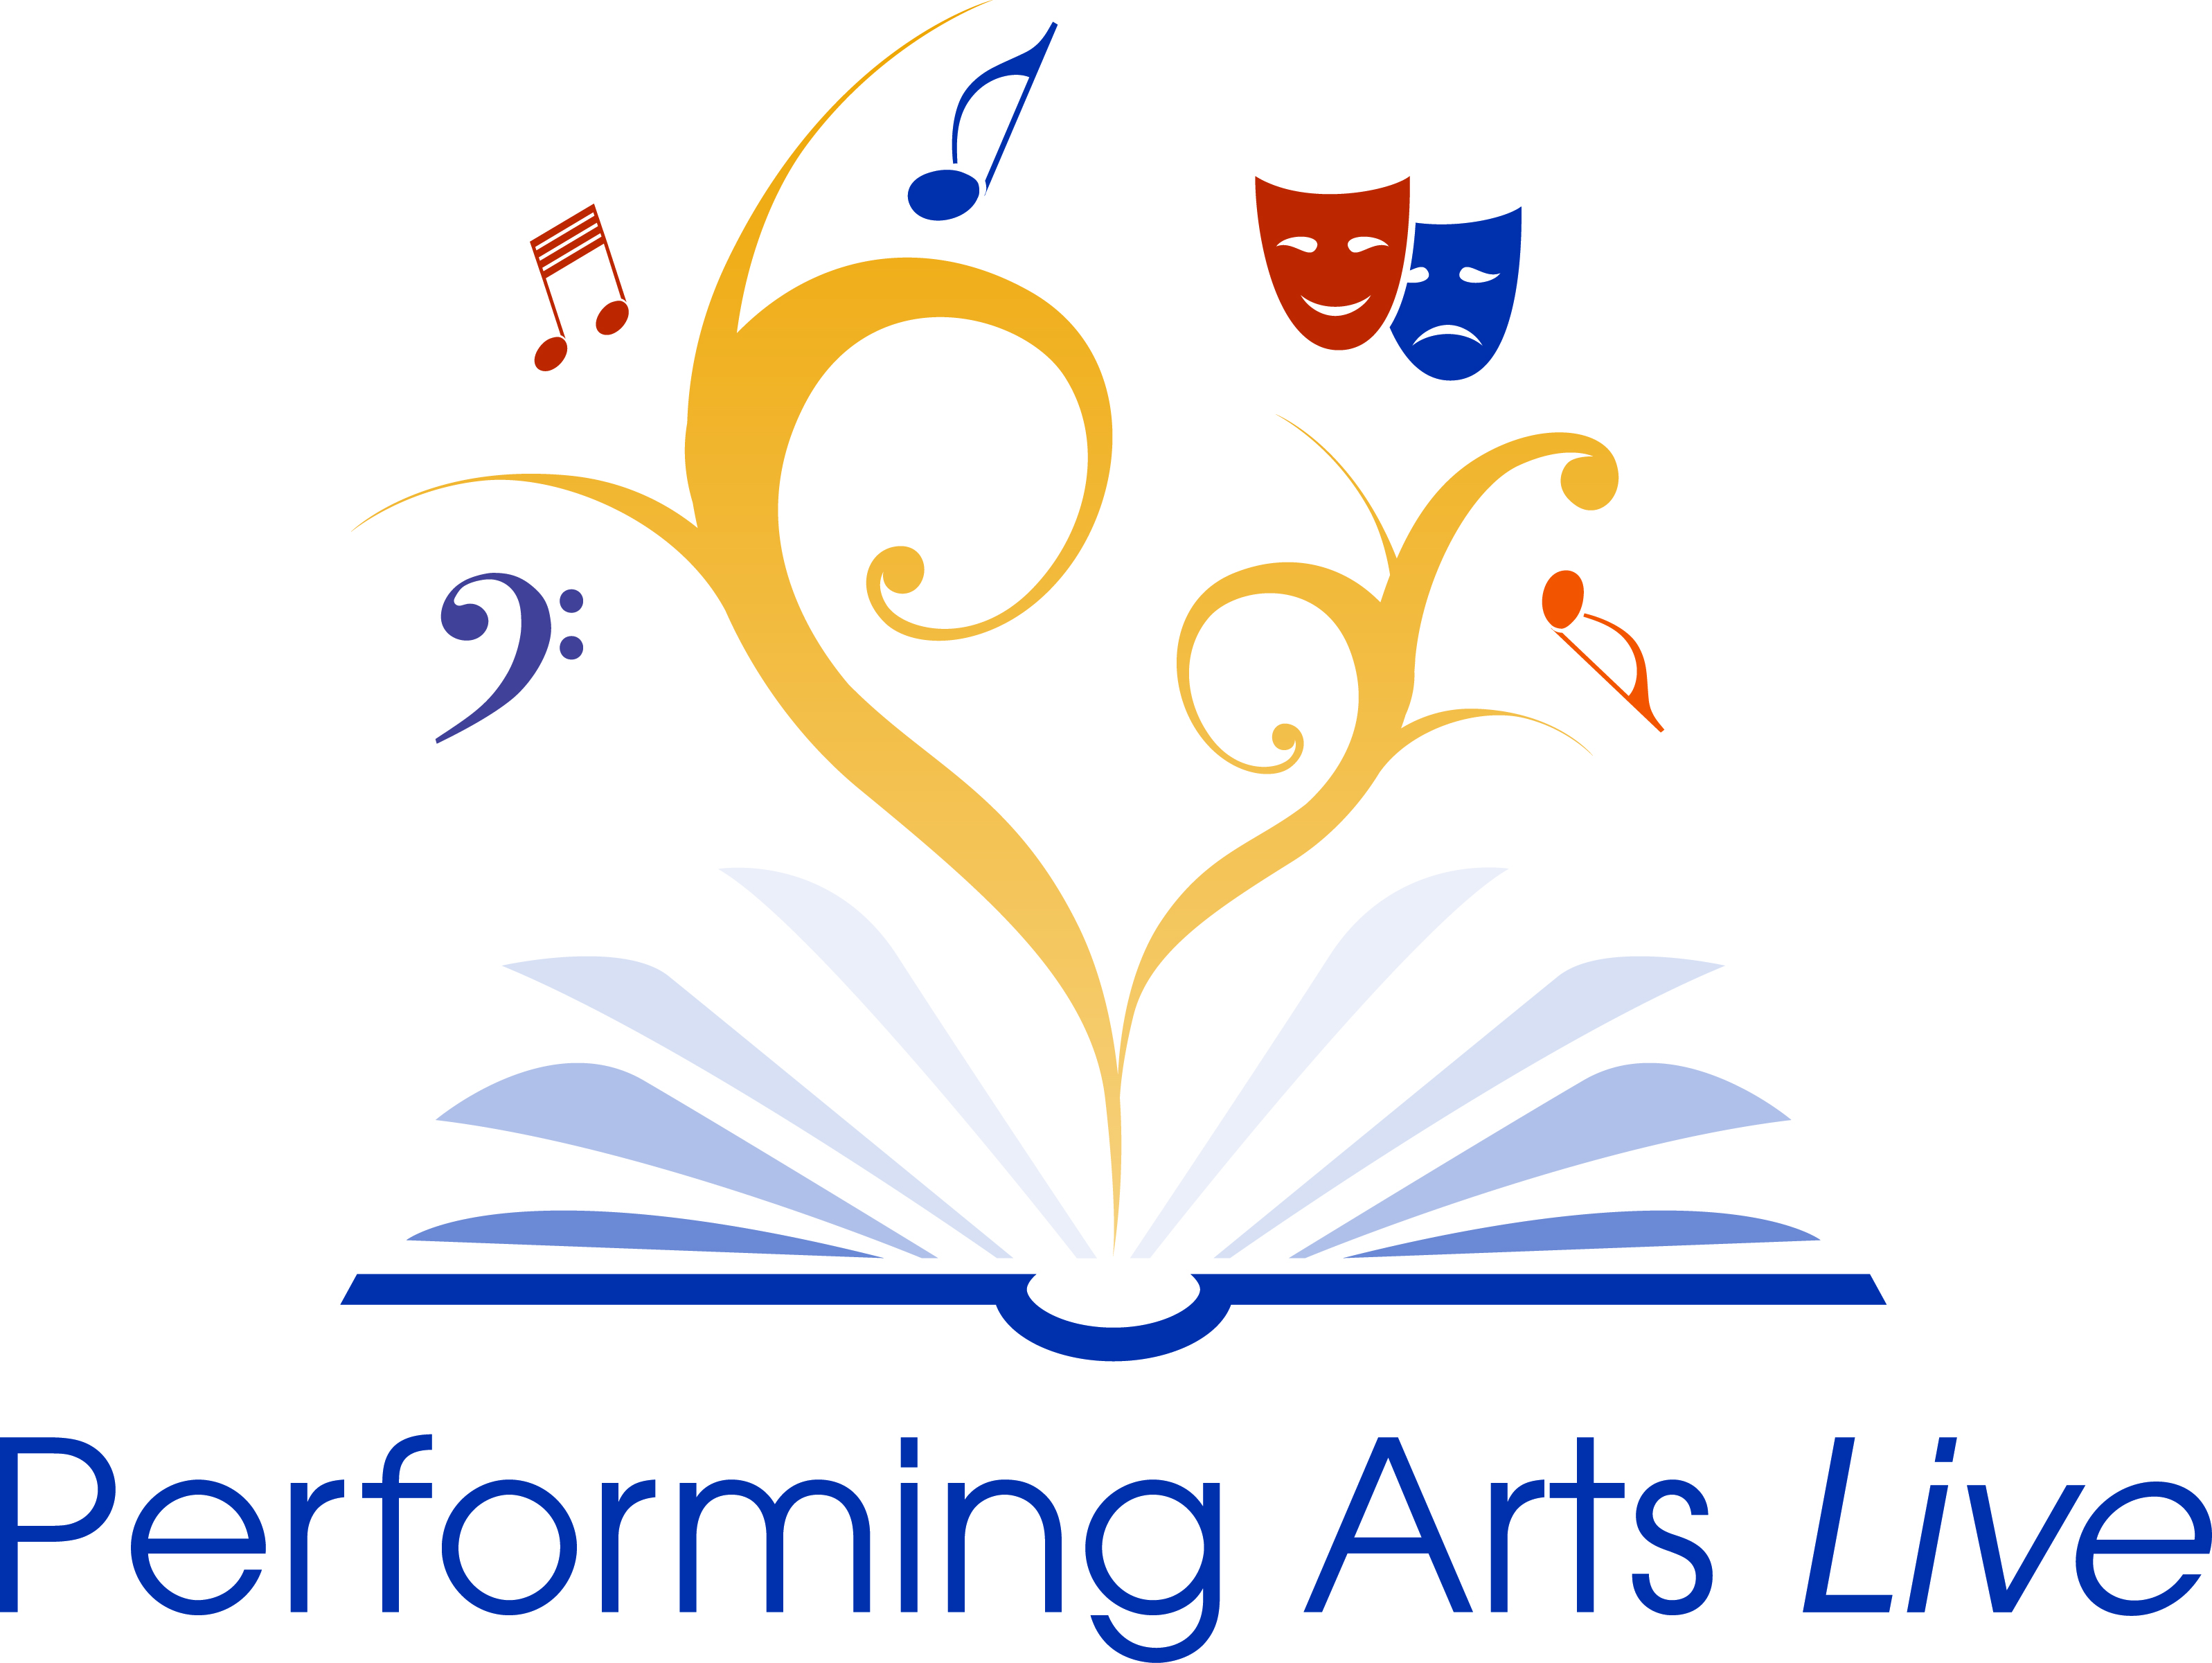 Performing Arts Live event logo